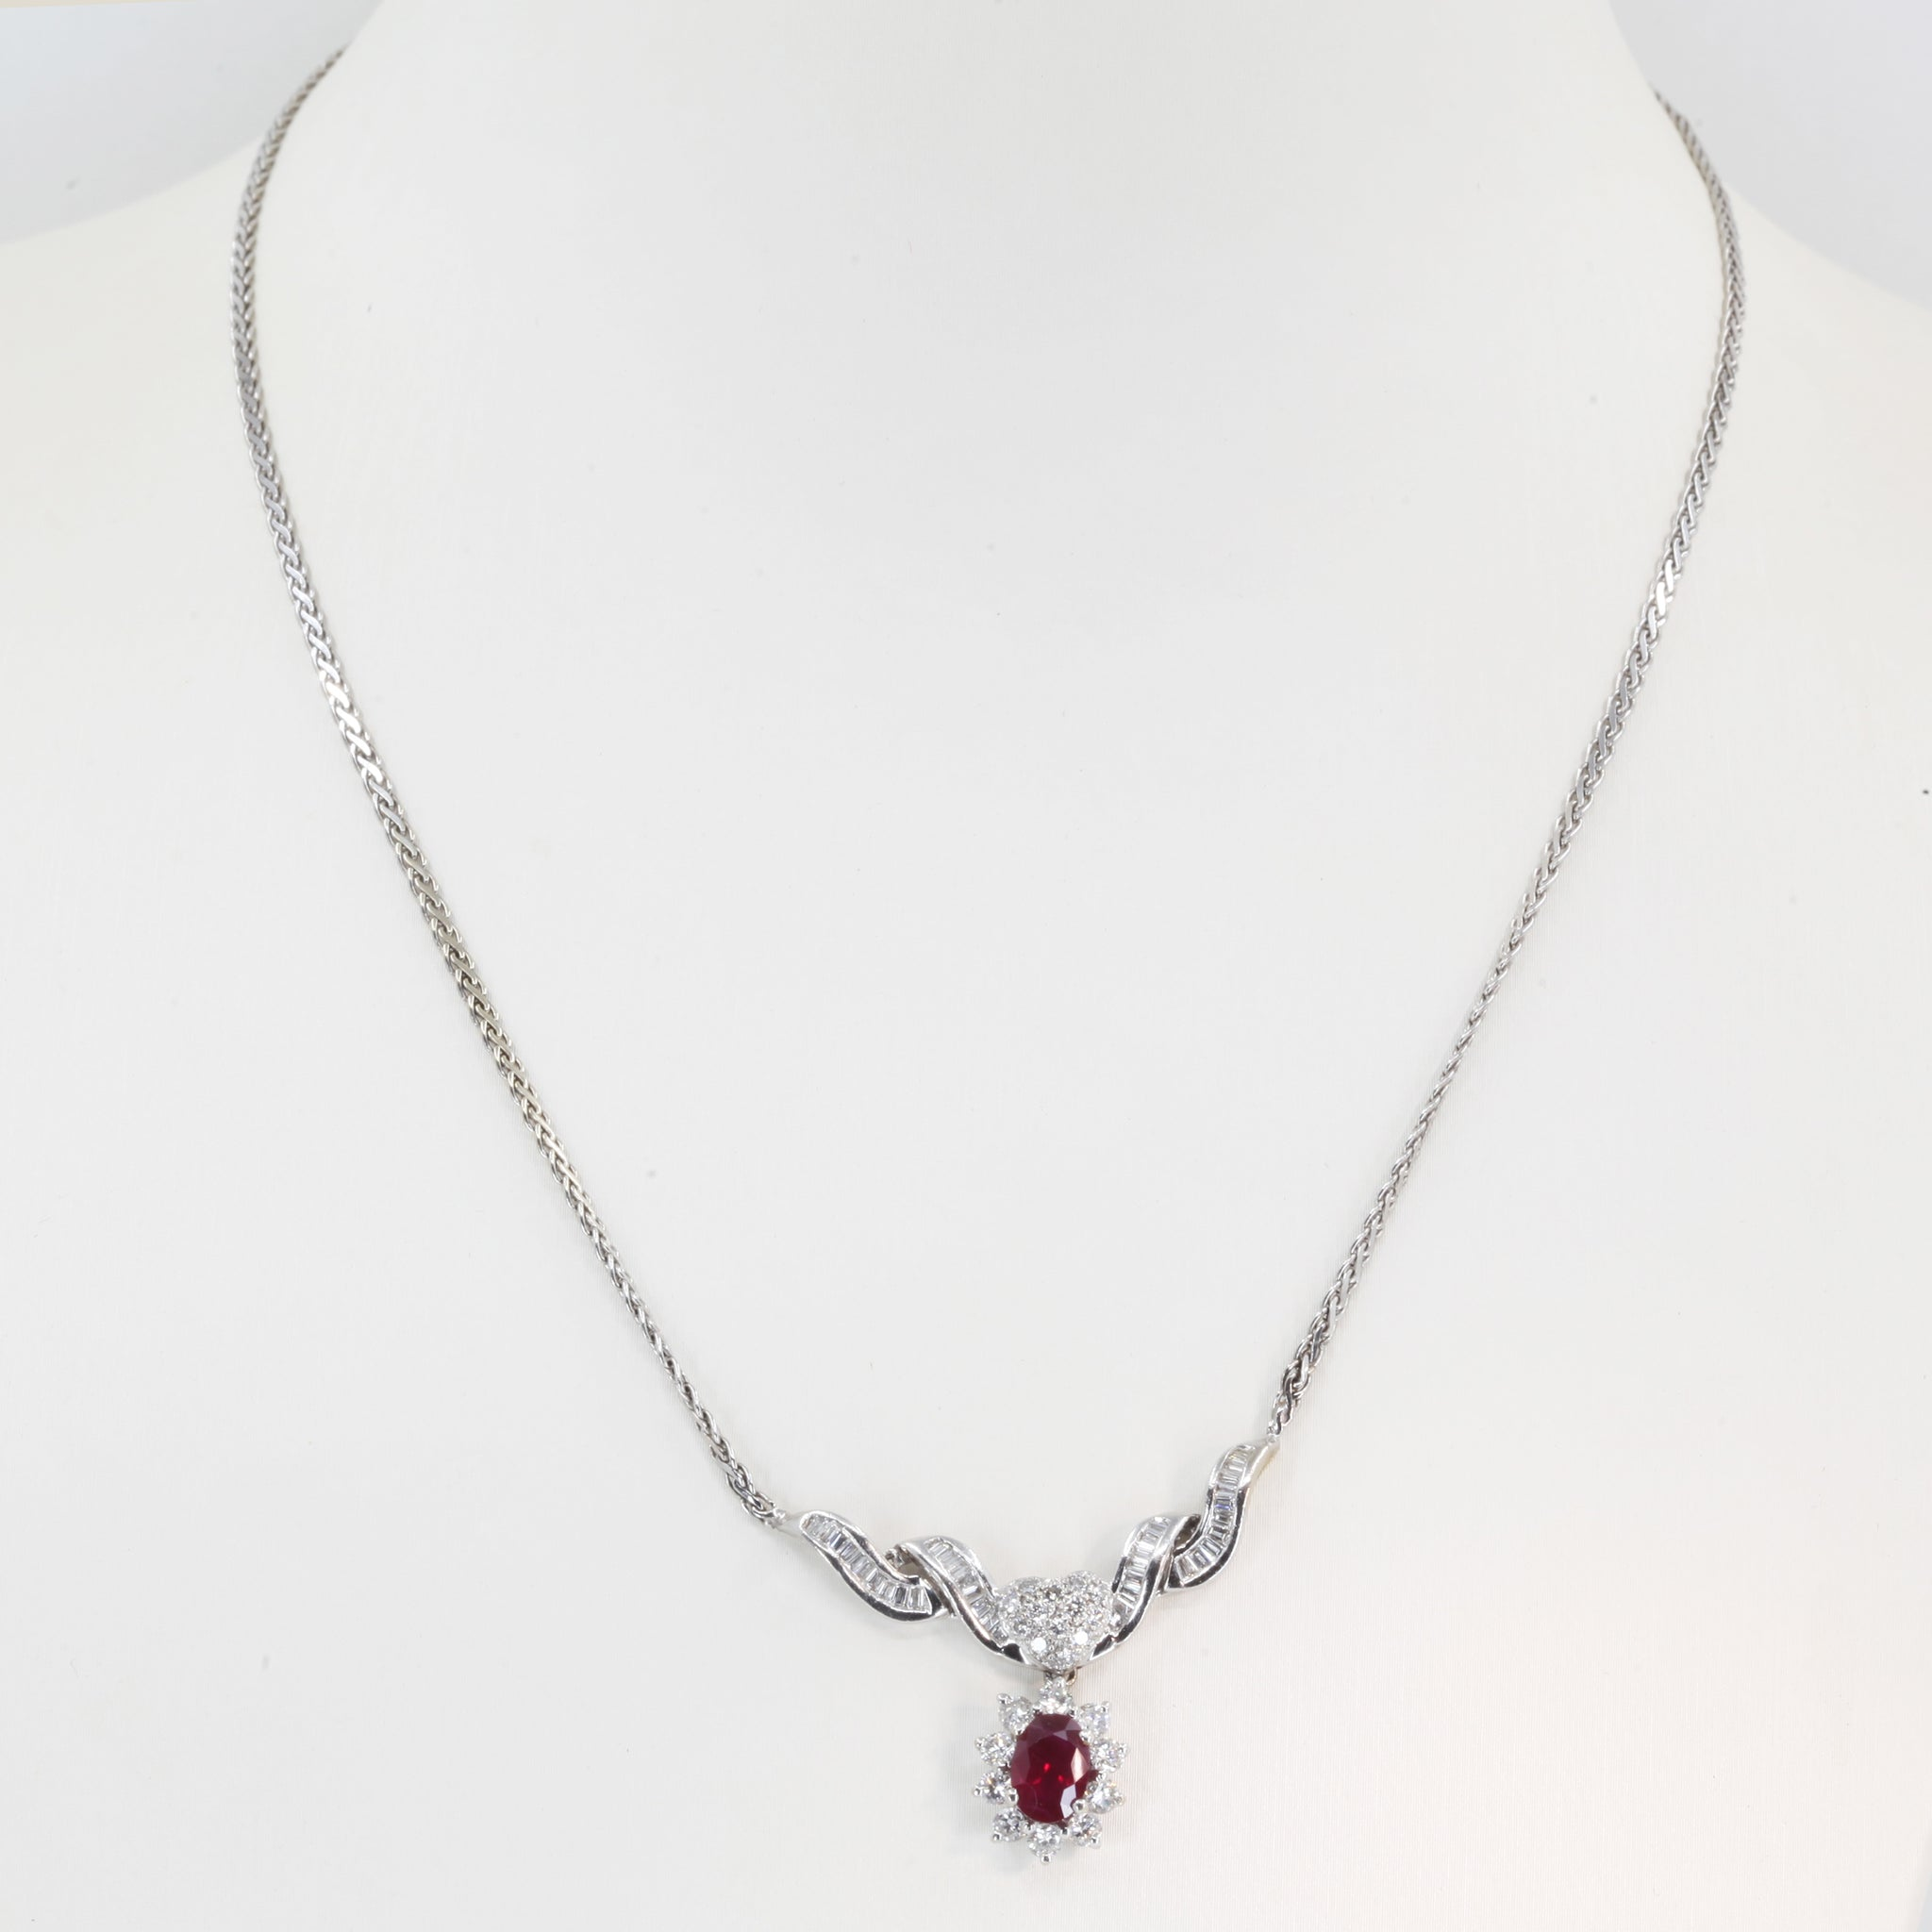 14K Solid White Gold Diamond Ruby Necklace R1.20 CT